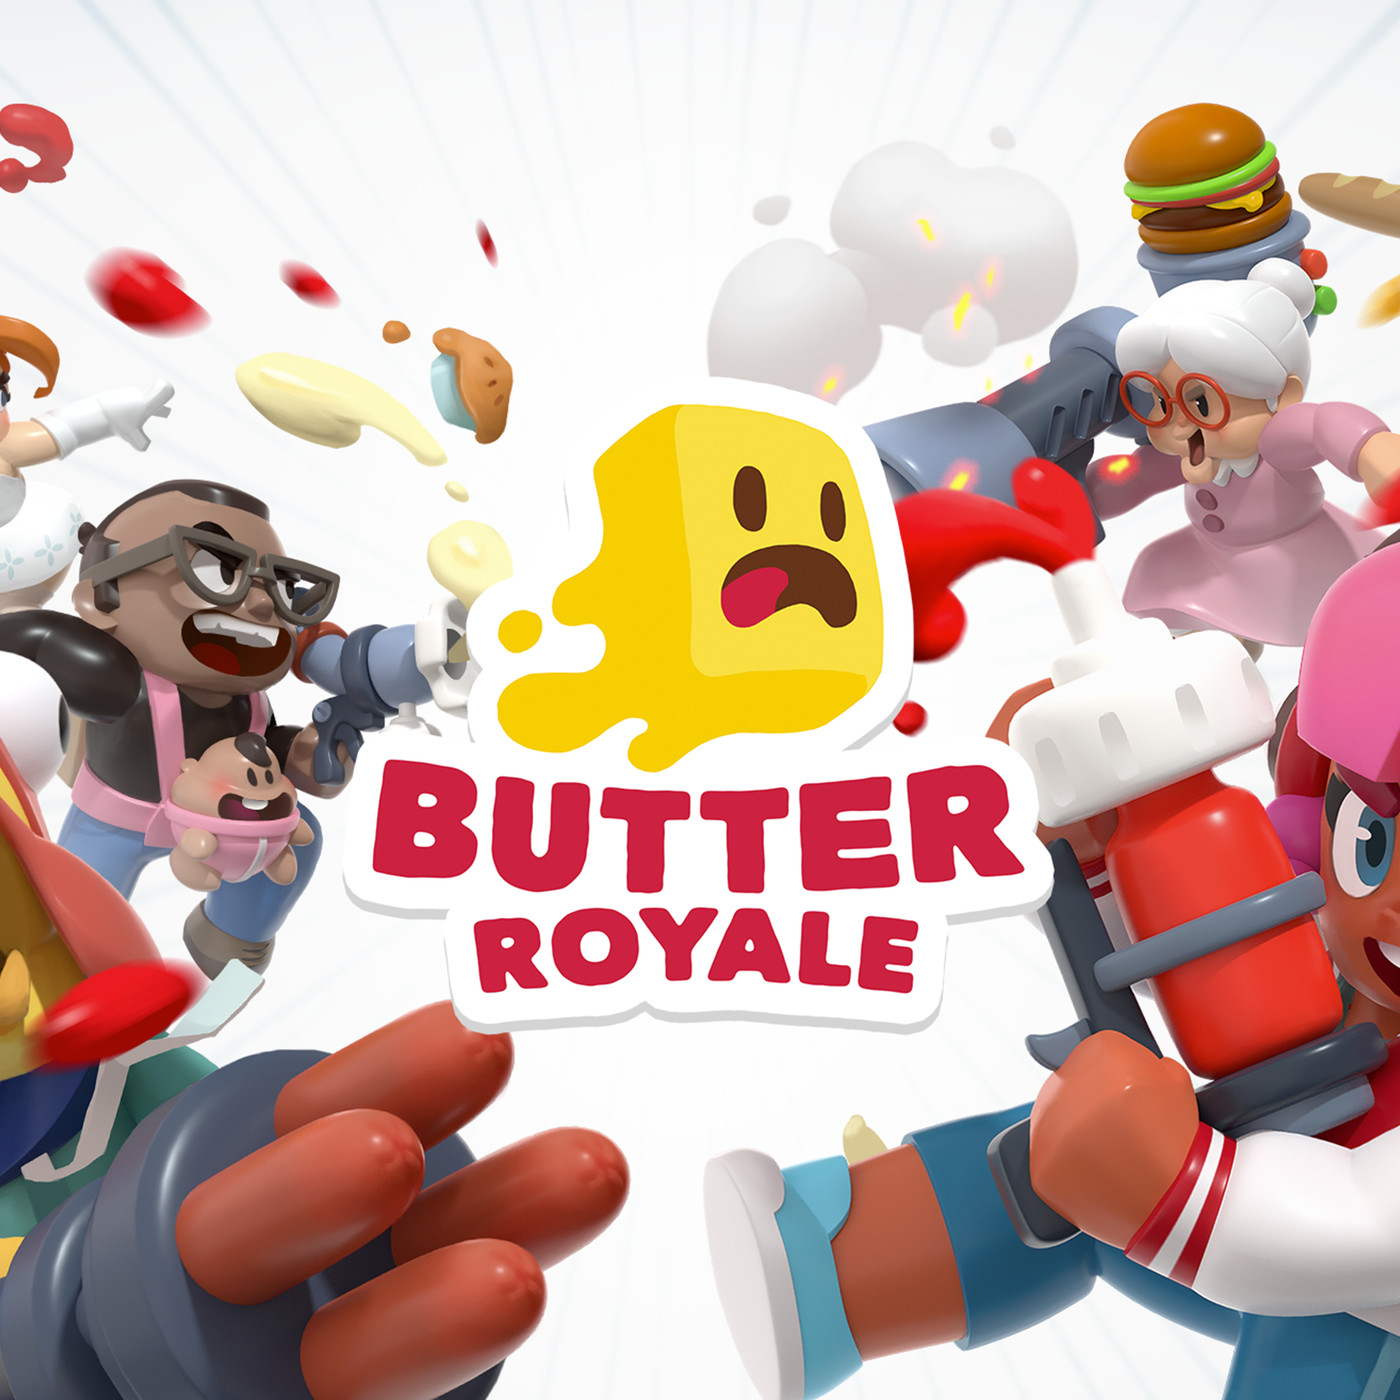 Apple Arcade S Latest Game Is A More Family Friendly Fortnite Called Butter Royale The Verge